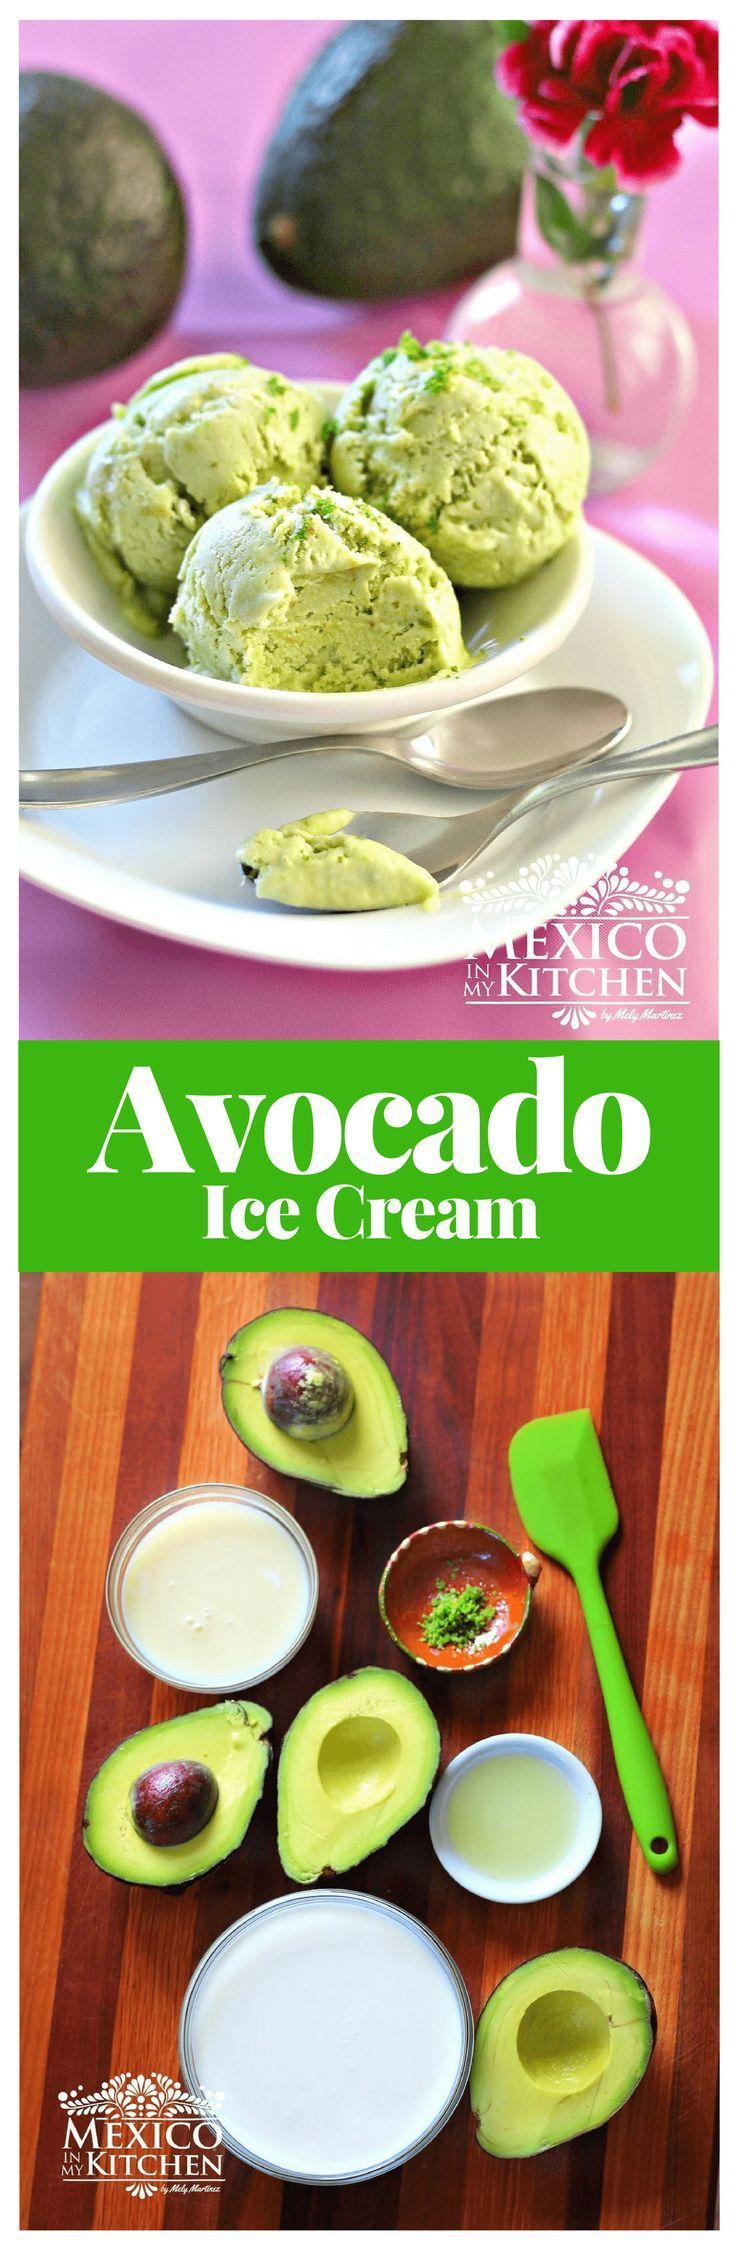 Avocado ice cream │Avocados are common fare on every Mexican table, either as a side dish or as an ingredient. #mexicanrecipes #avocado #kitchen #desserts